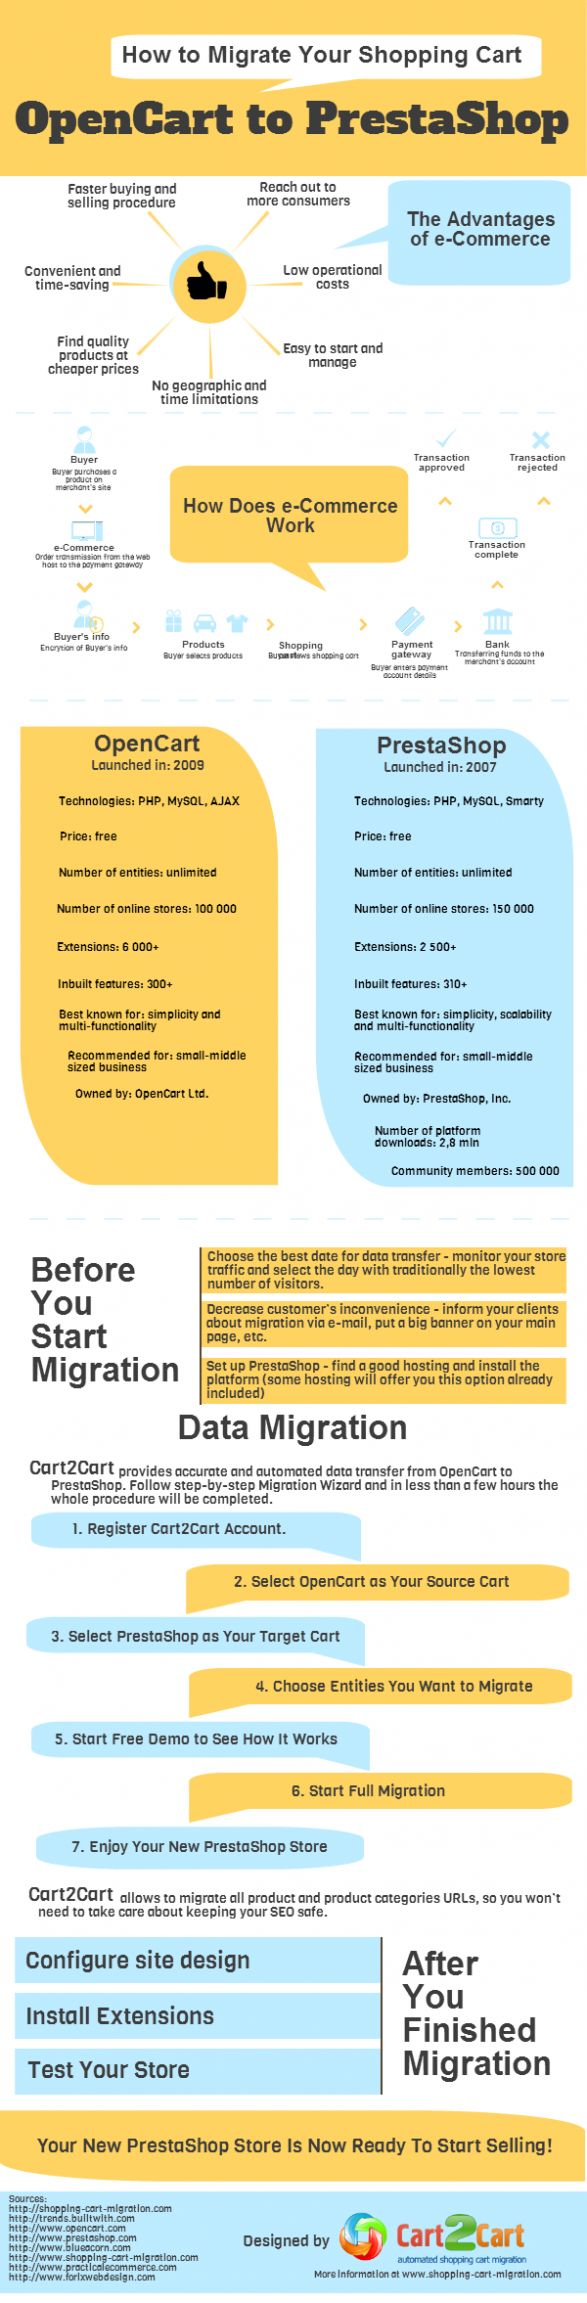 How to Migrate Your Shopping Cart: OpenCart to #PrestaShop | #Infographic